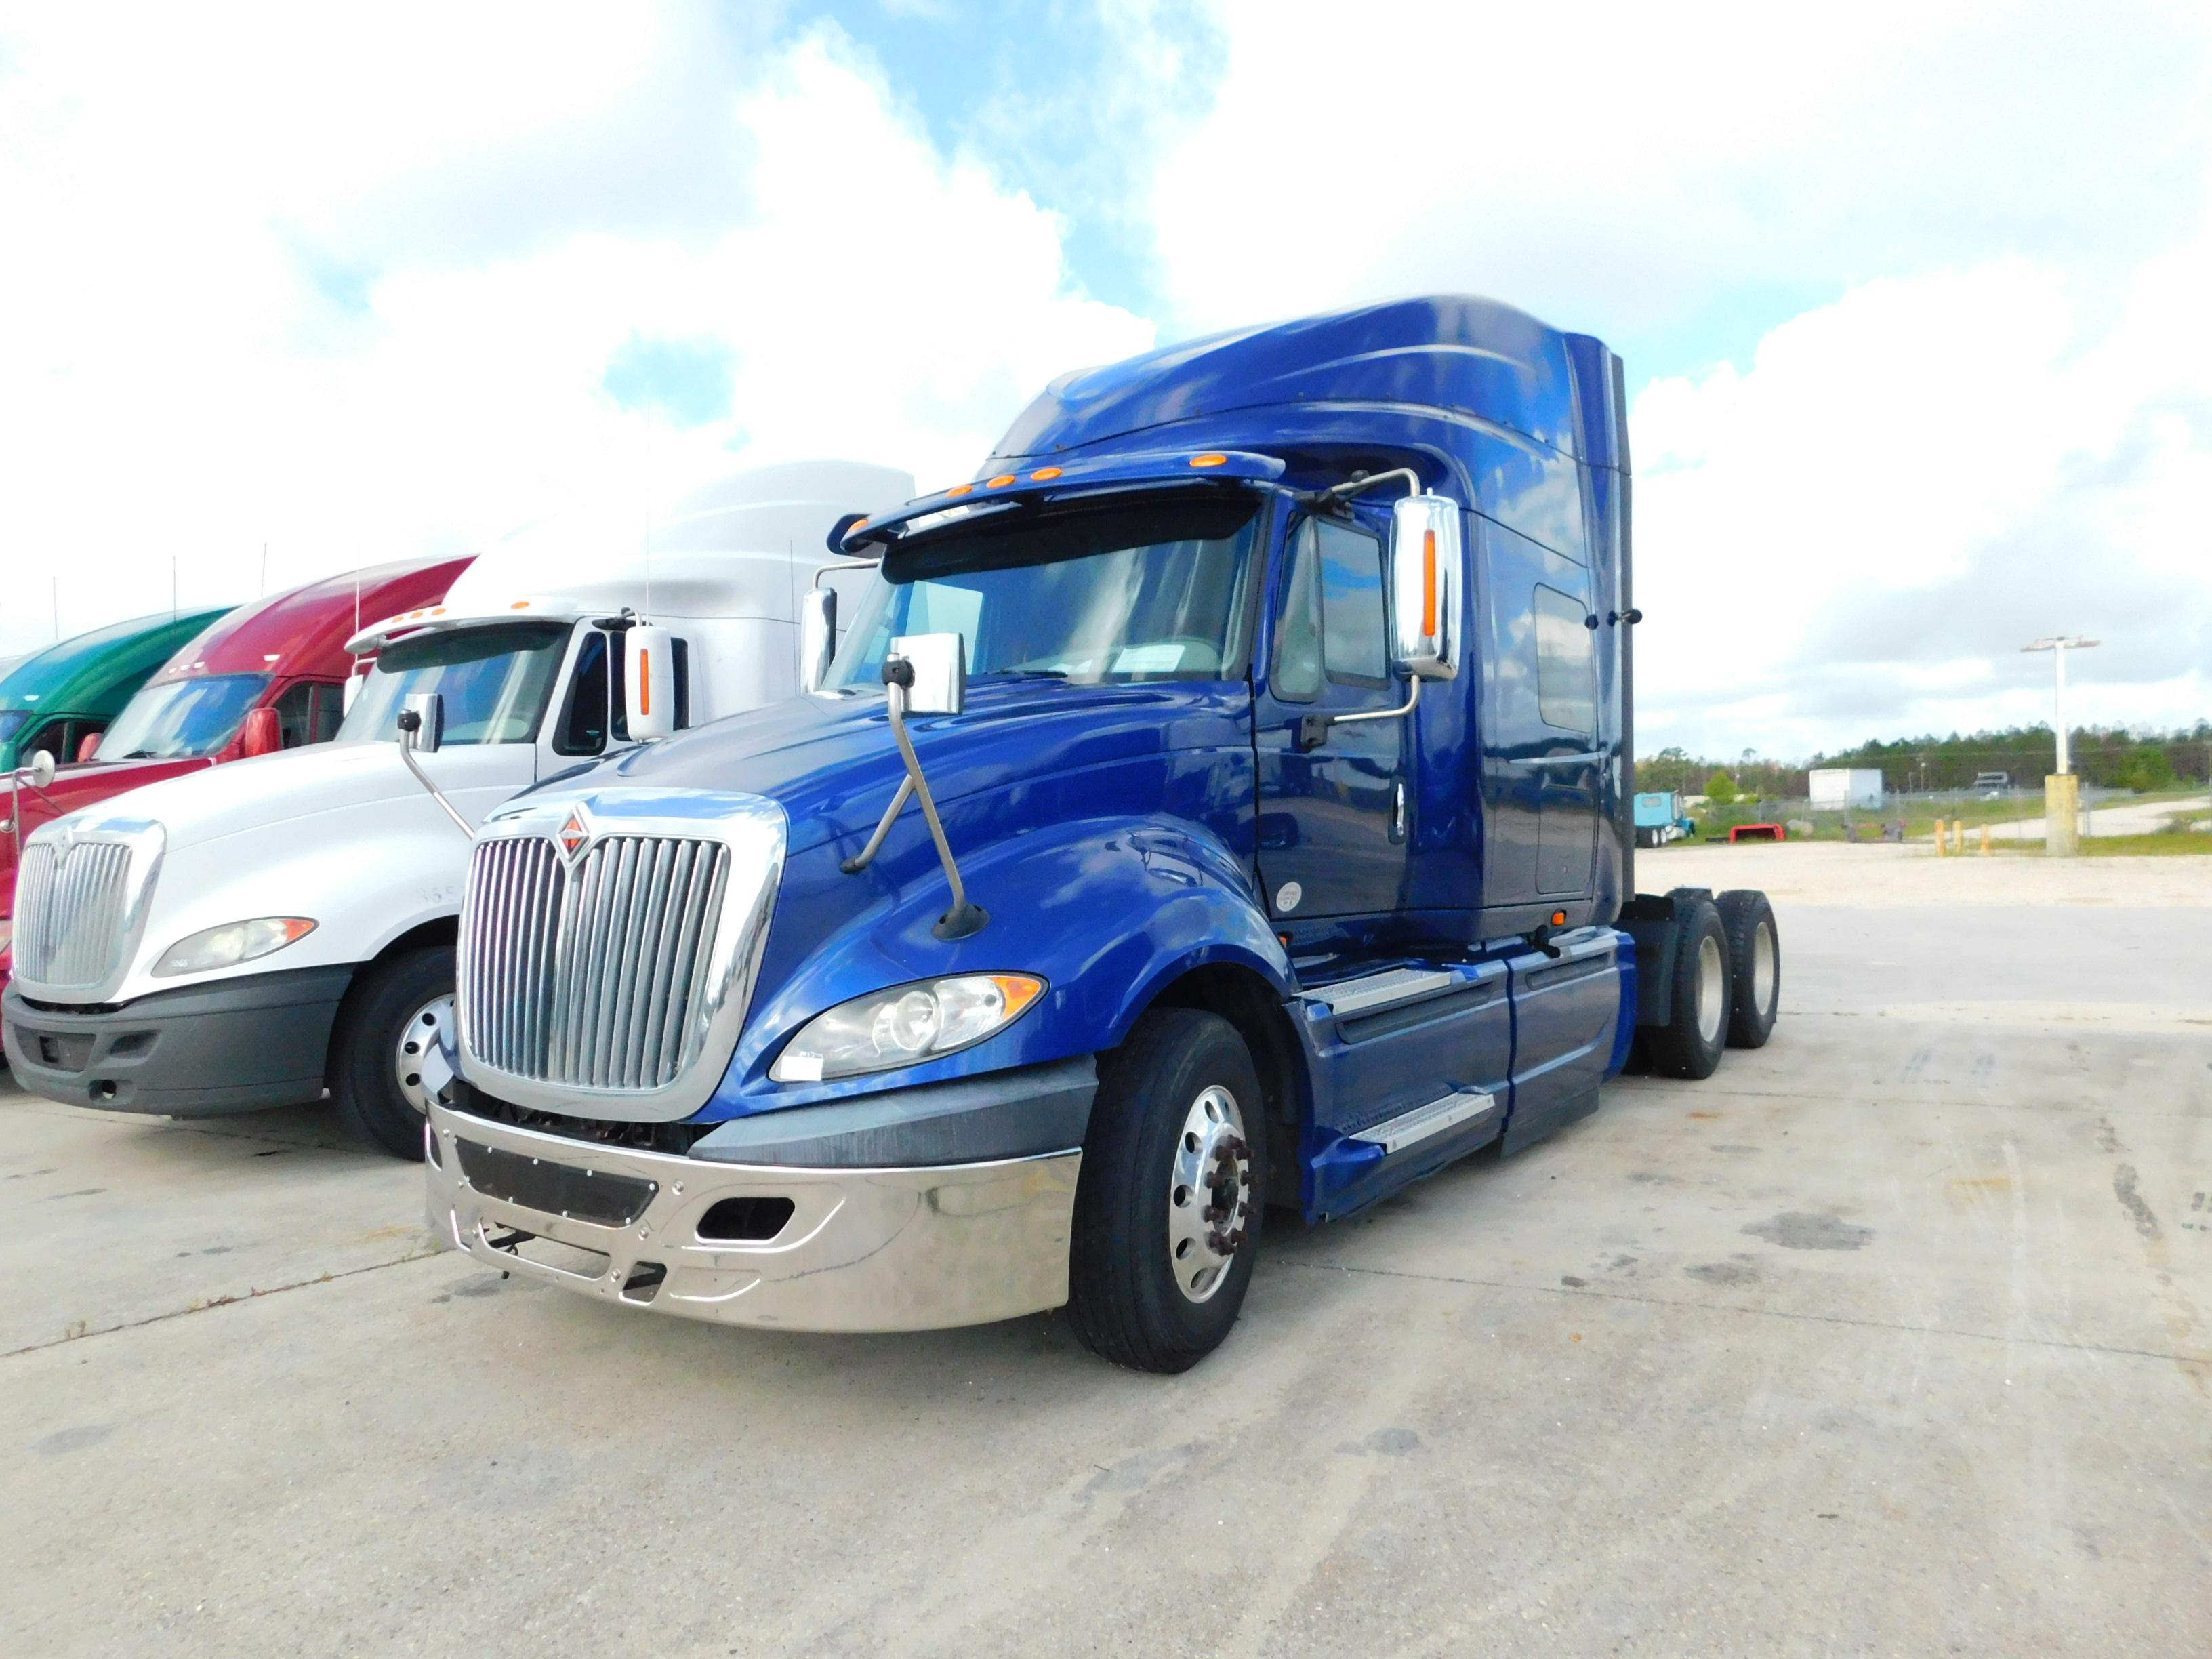 USED 2015 INTERNATIONAL PROSTAR EAGLE LTD SLEEPER TRUCK #180054